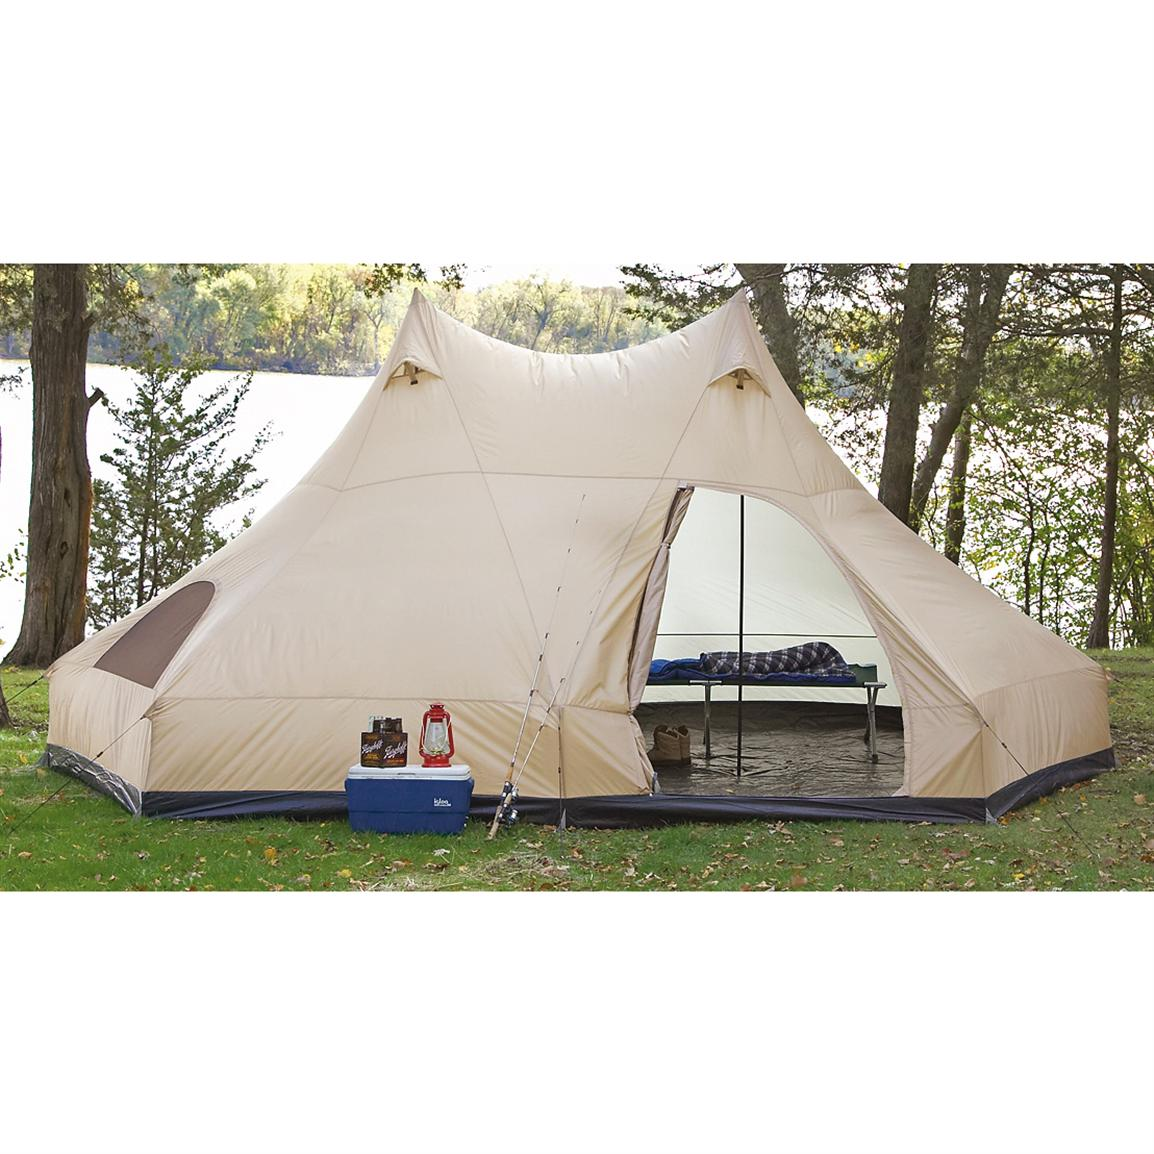 Guide Gear® Double-pole Wigwam Tent  sc 1 st  Sportsmanu0027s Guide & Guide Gear® Single - pole Wigwam Tent - 151368 Cabin Tents at ...